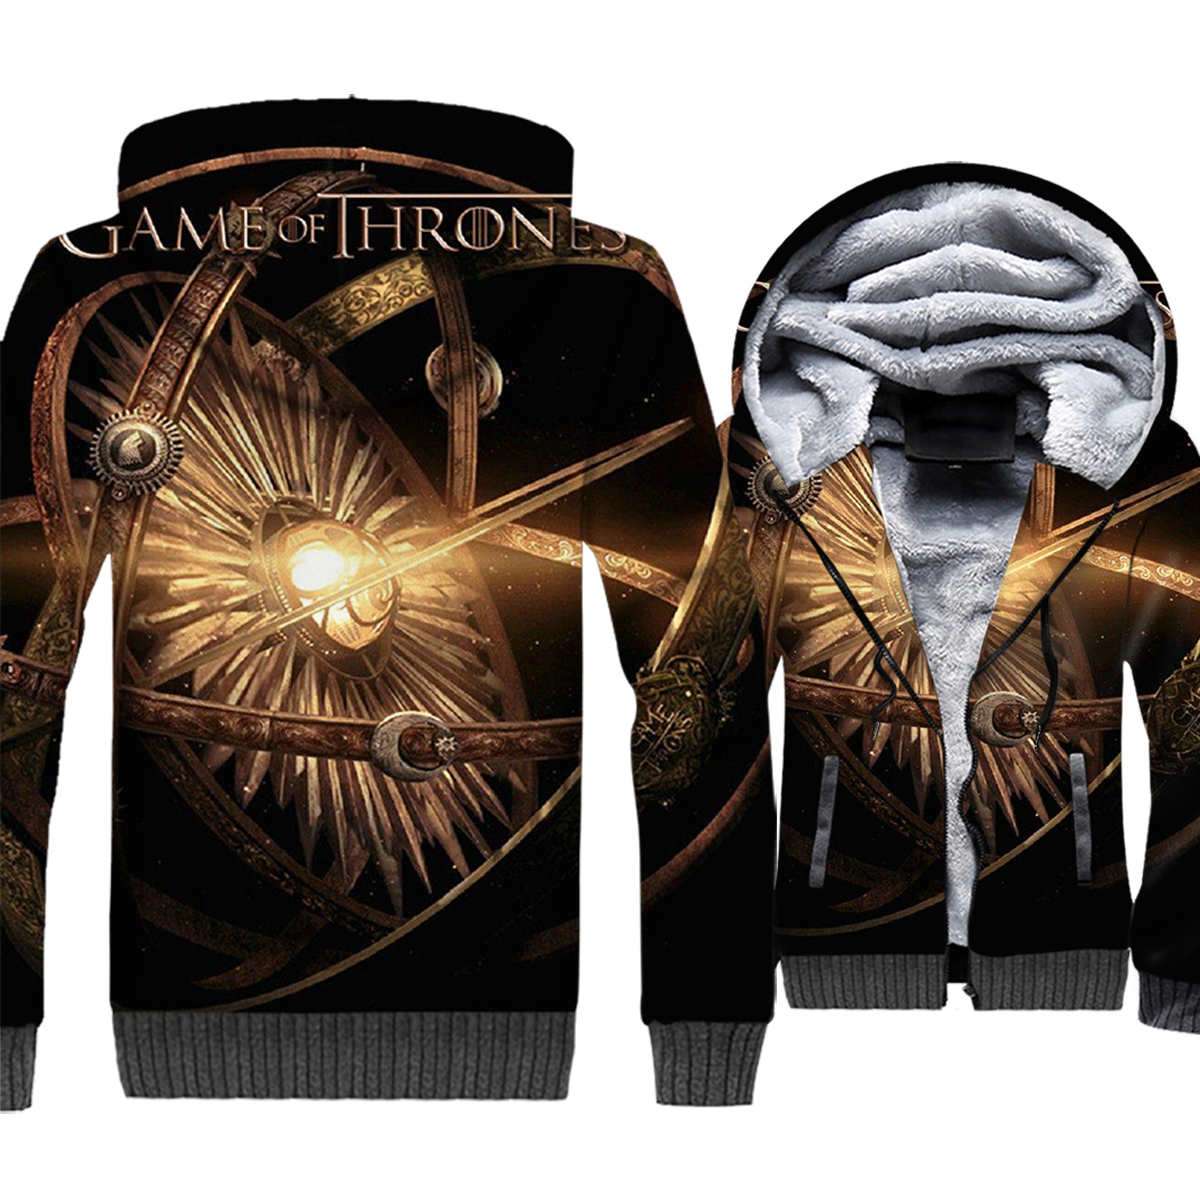 2019 men Game of Thrones jackets harajuku thicken wool liner sweatshirts funny 3D Printing swag clothes brand tracksuits coats in Hoodies amp Sweatshirts from Men 39 s Clothing